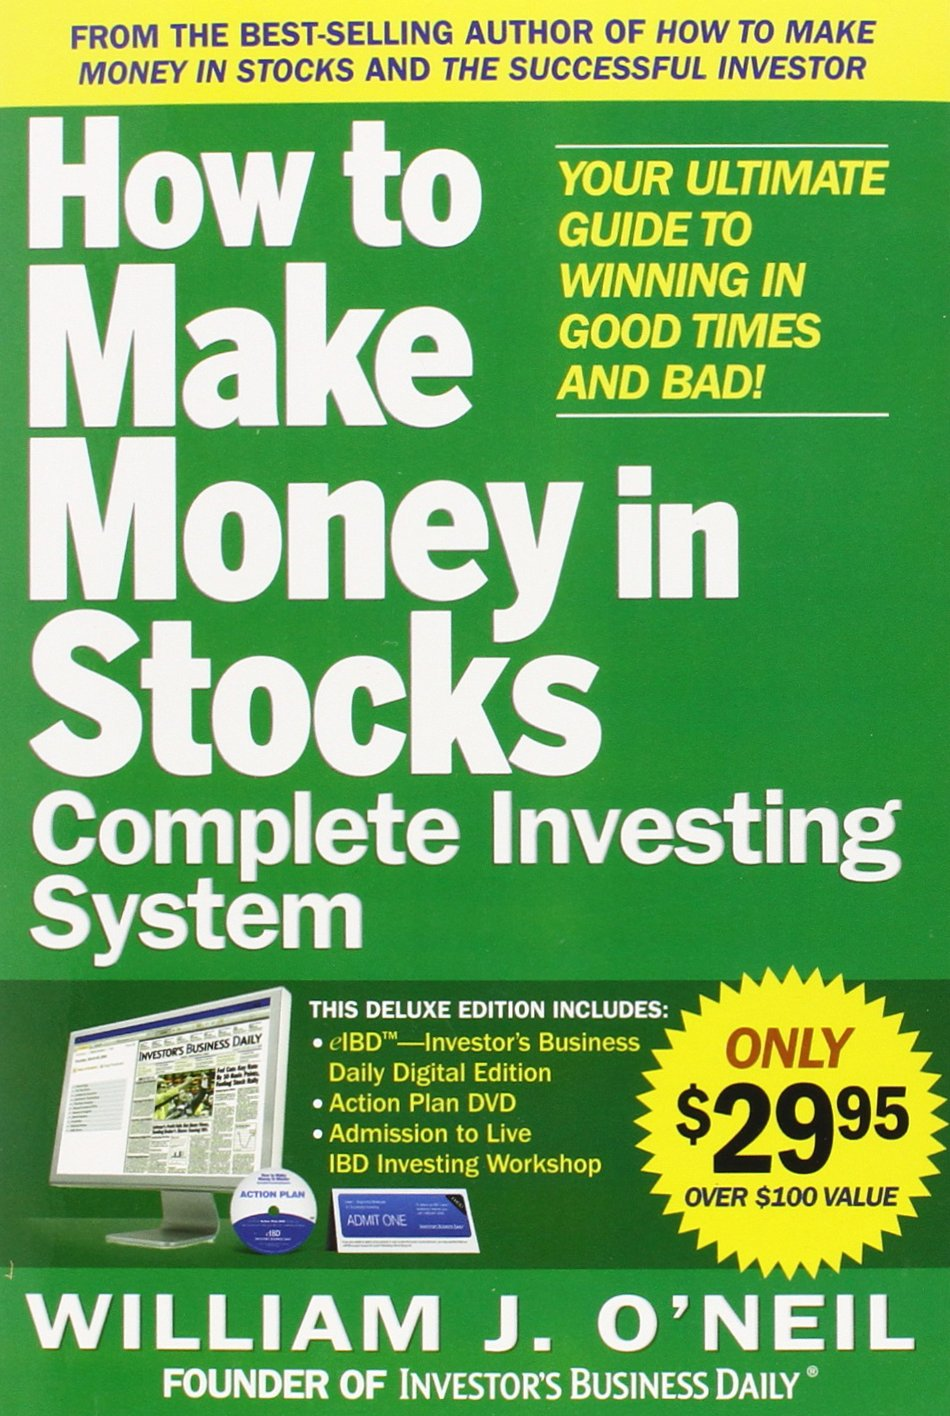 The How To Make Money In Stocks Complete Investing System Your Ultimate Guide To Winning In Good Times And Bad O Neil William 9780071752114 Amazon Com Books